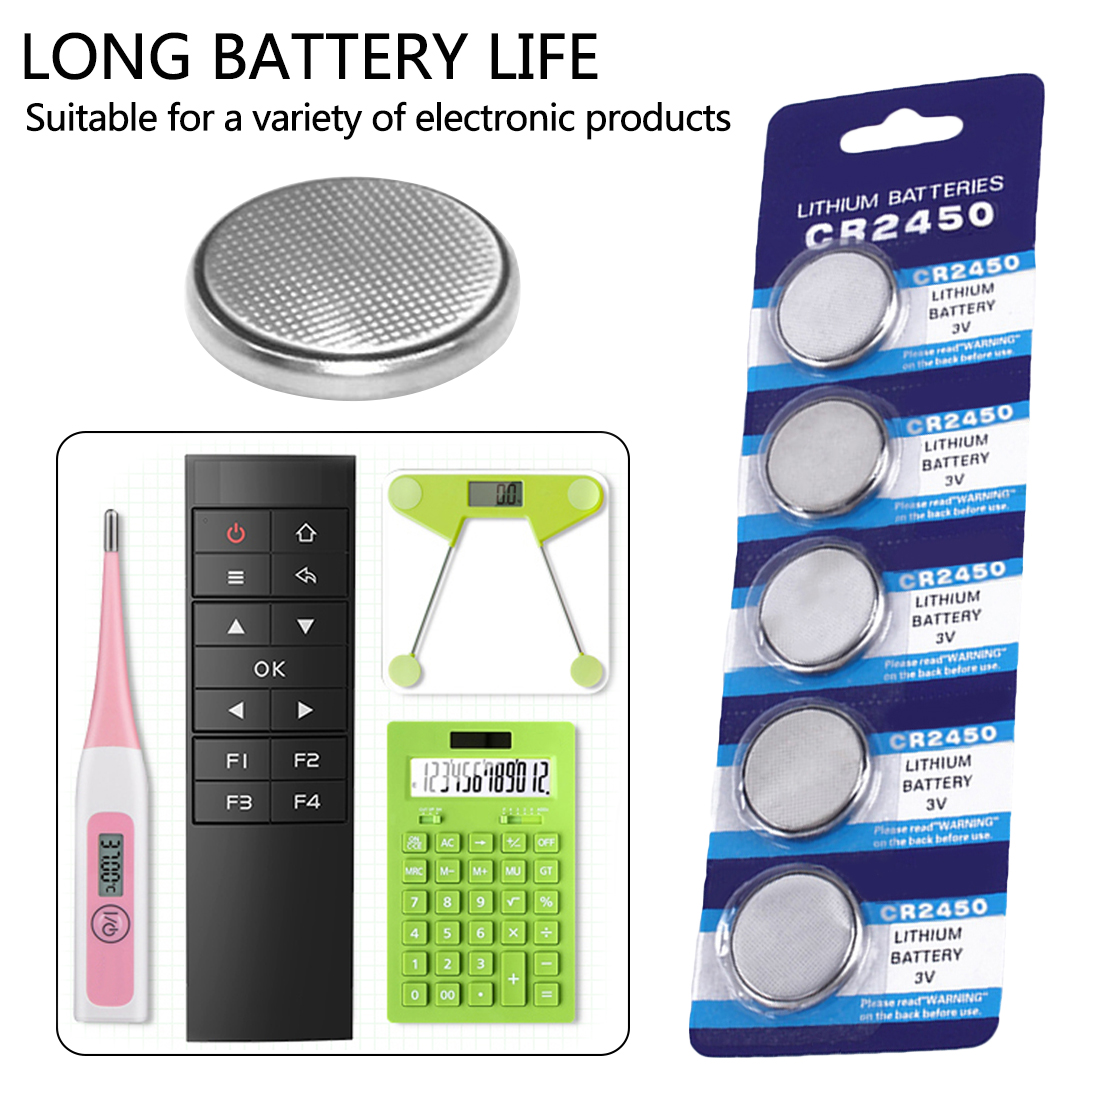 2*5pcs/pack CR2450 Button Batteries KCR2450 5029LC LM2450 Cell Coin Lithium Battery <font><b>3V</b></font> <font><b>CR</b></font> <font><b>2450</b></font> For Watch Electronic Toy Remote image